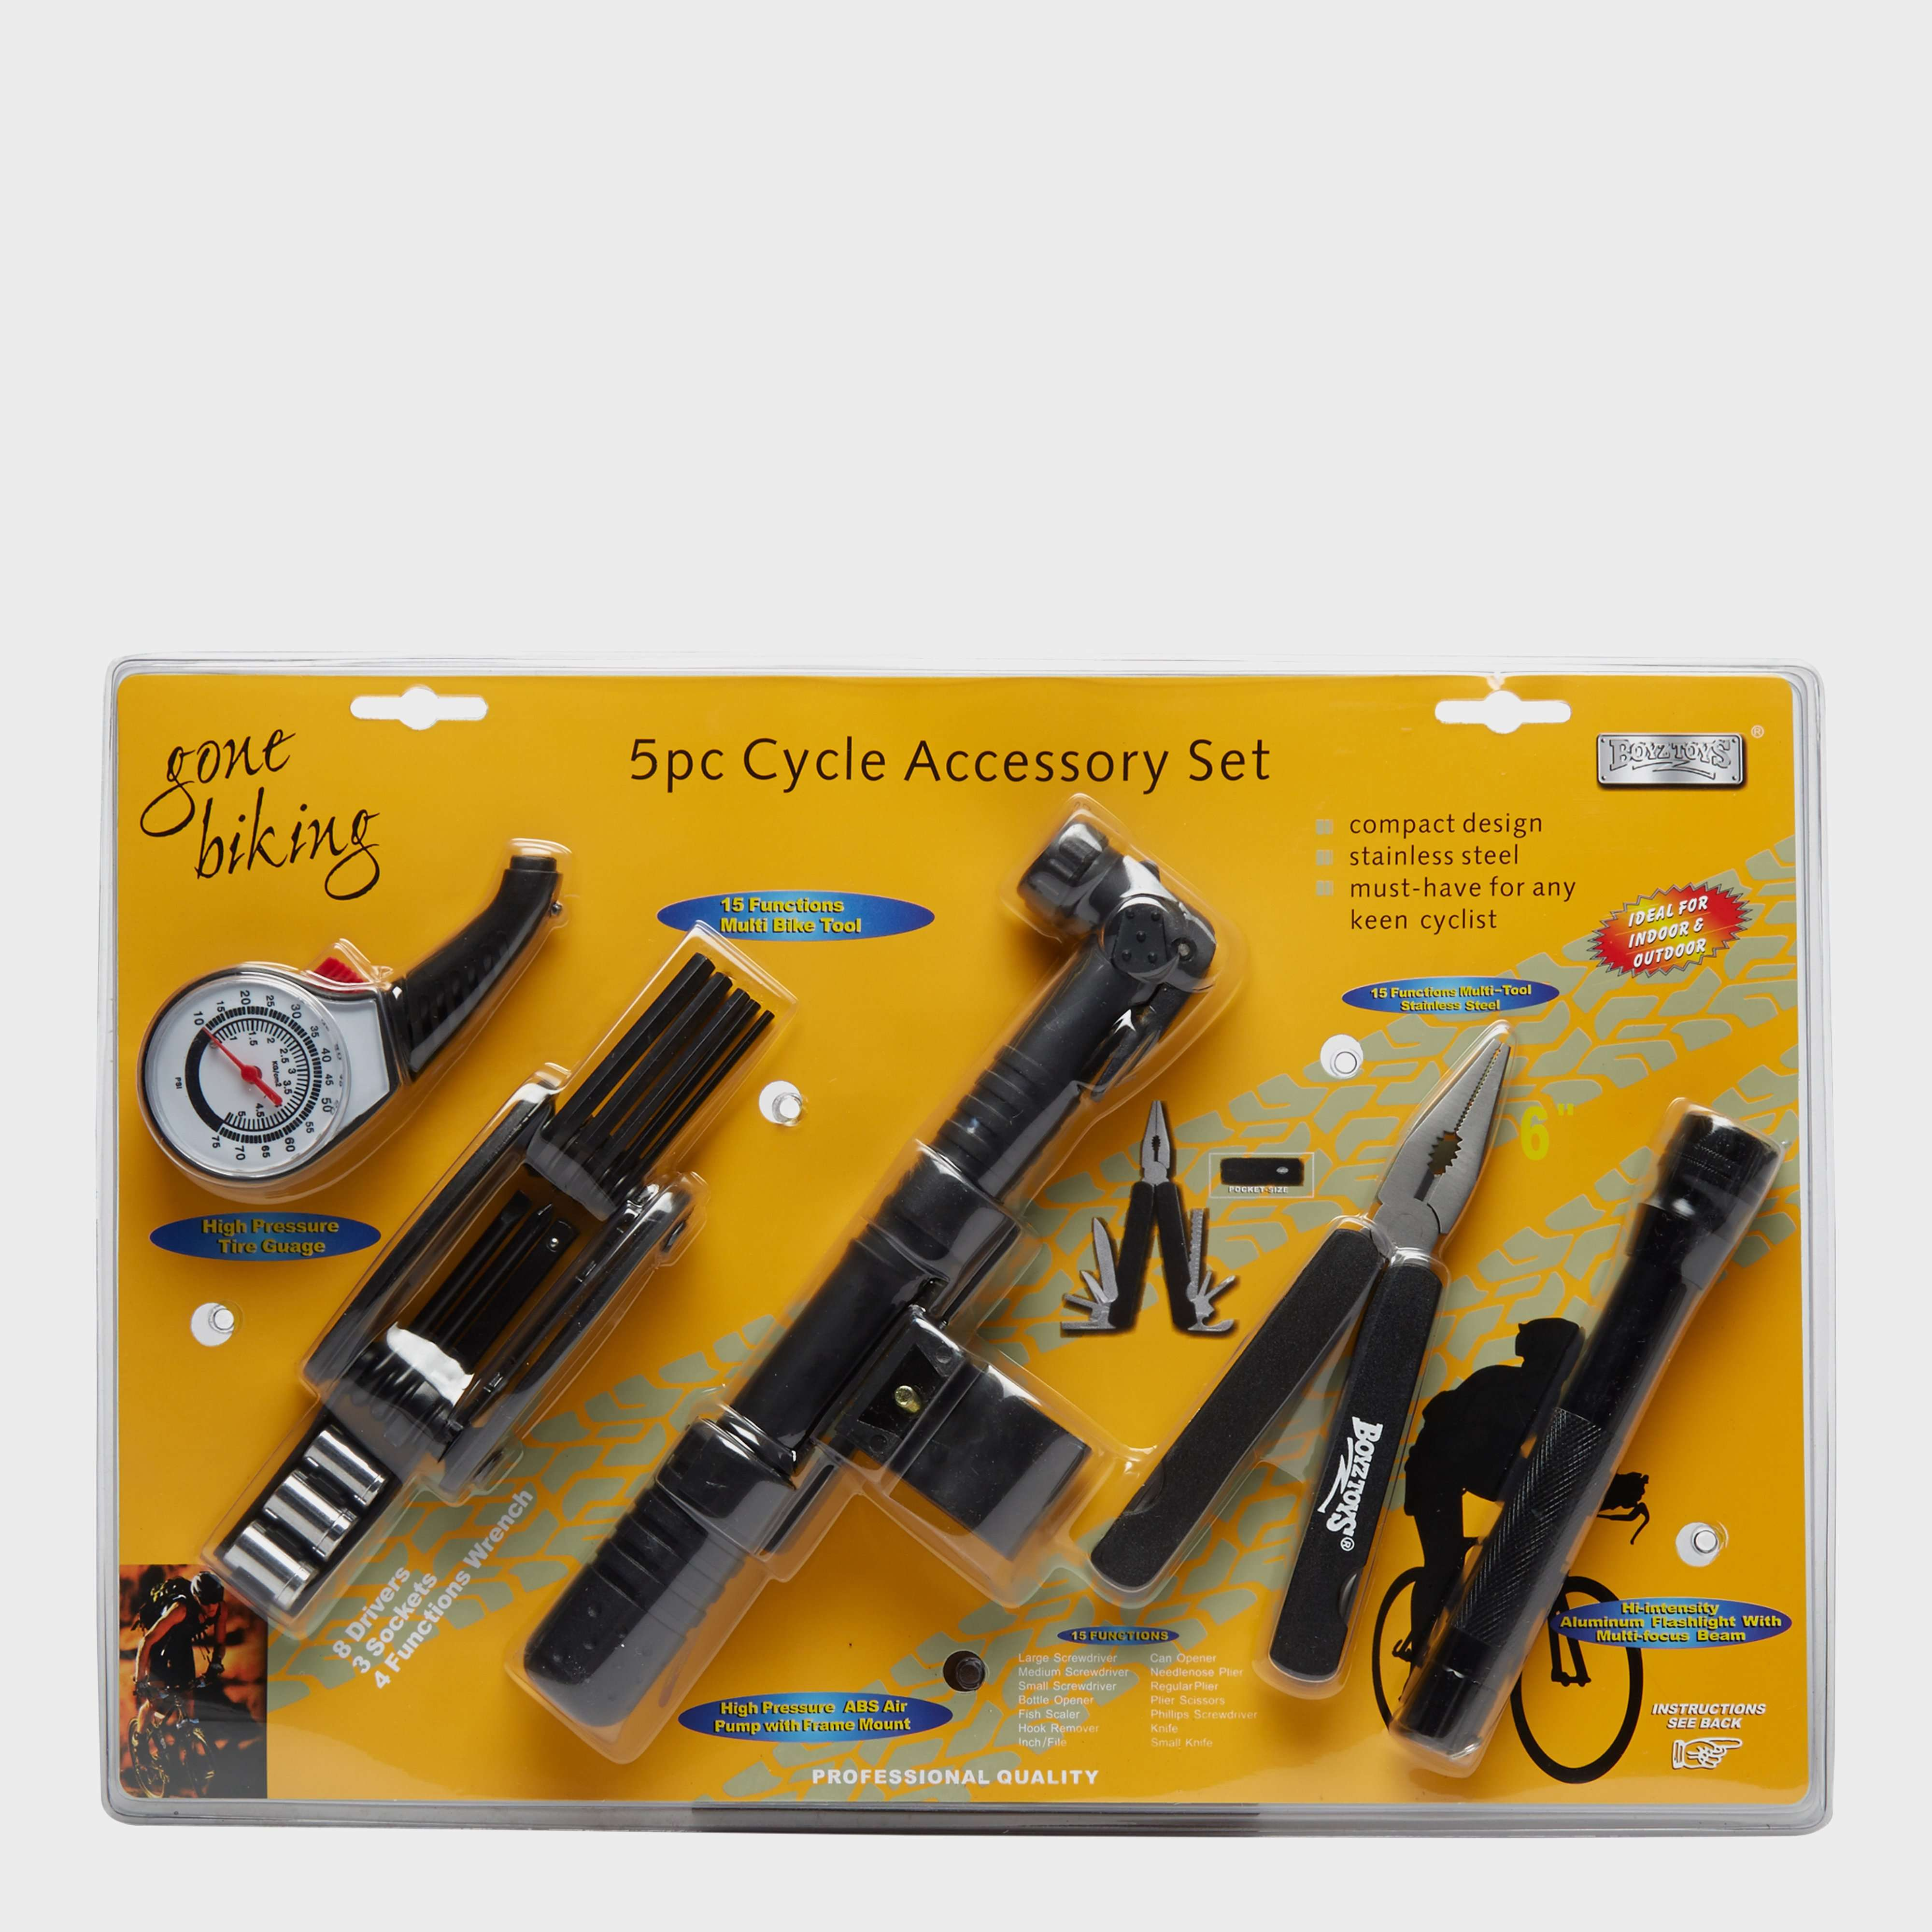 BOYZ TOYS 5 Piece Cycle Accessory Set